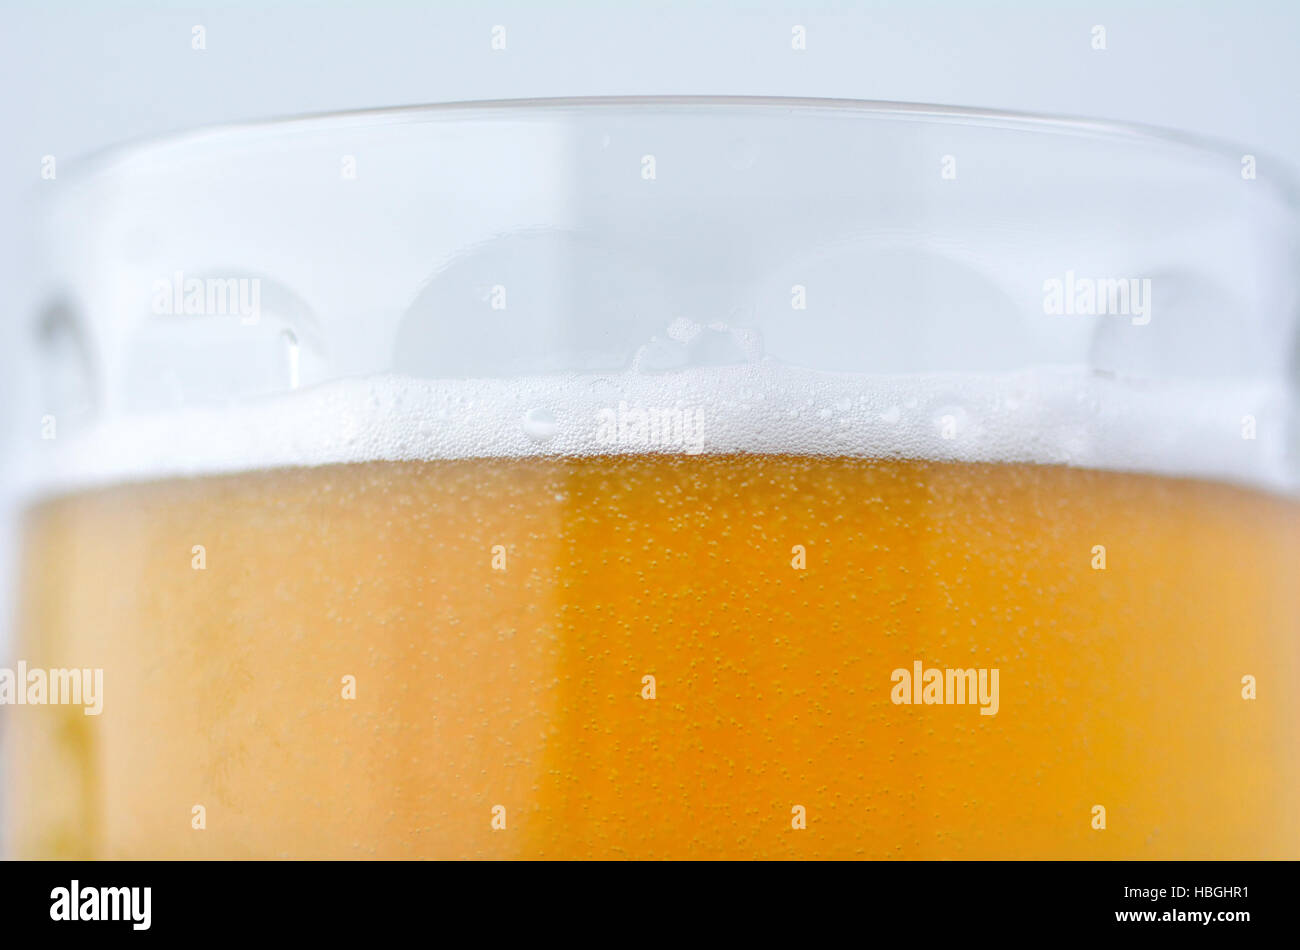 Detail of beer in a mug. Food and drinks background. Alcohol consumption concept. copy space - Stock Image